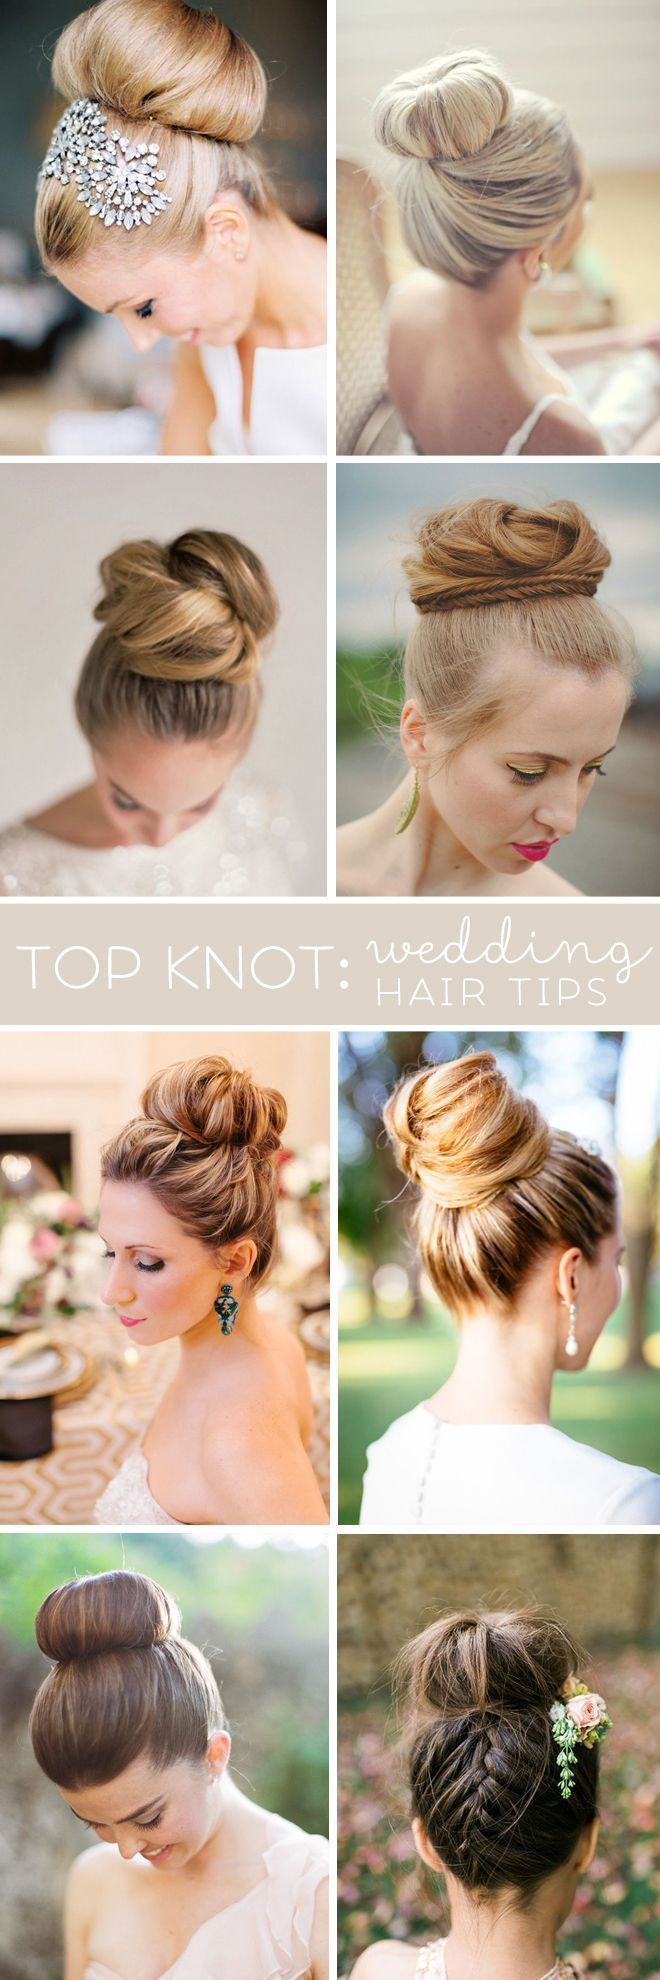 best 25+ top knot hair ideas on pinterest | top knot, easy top